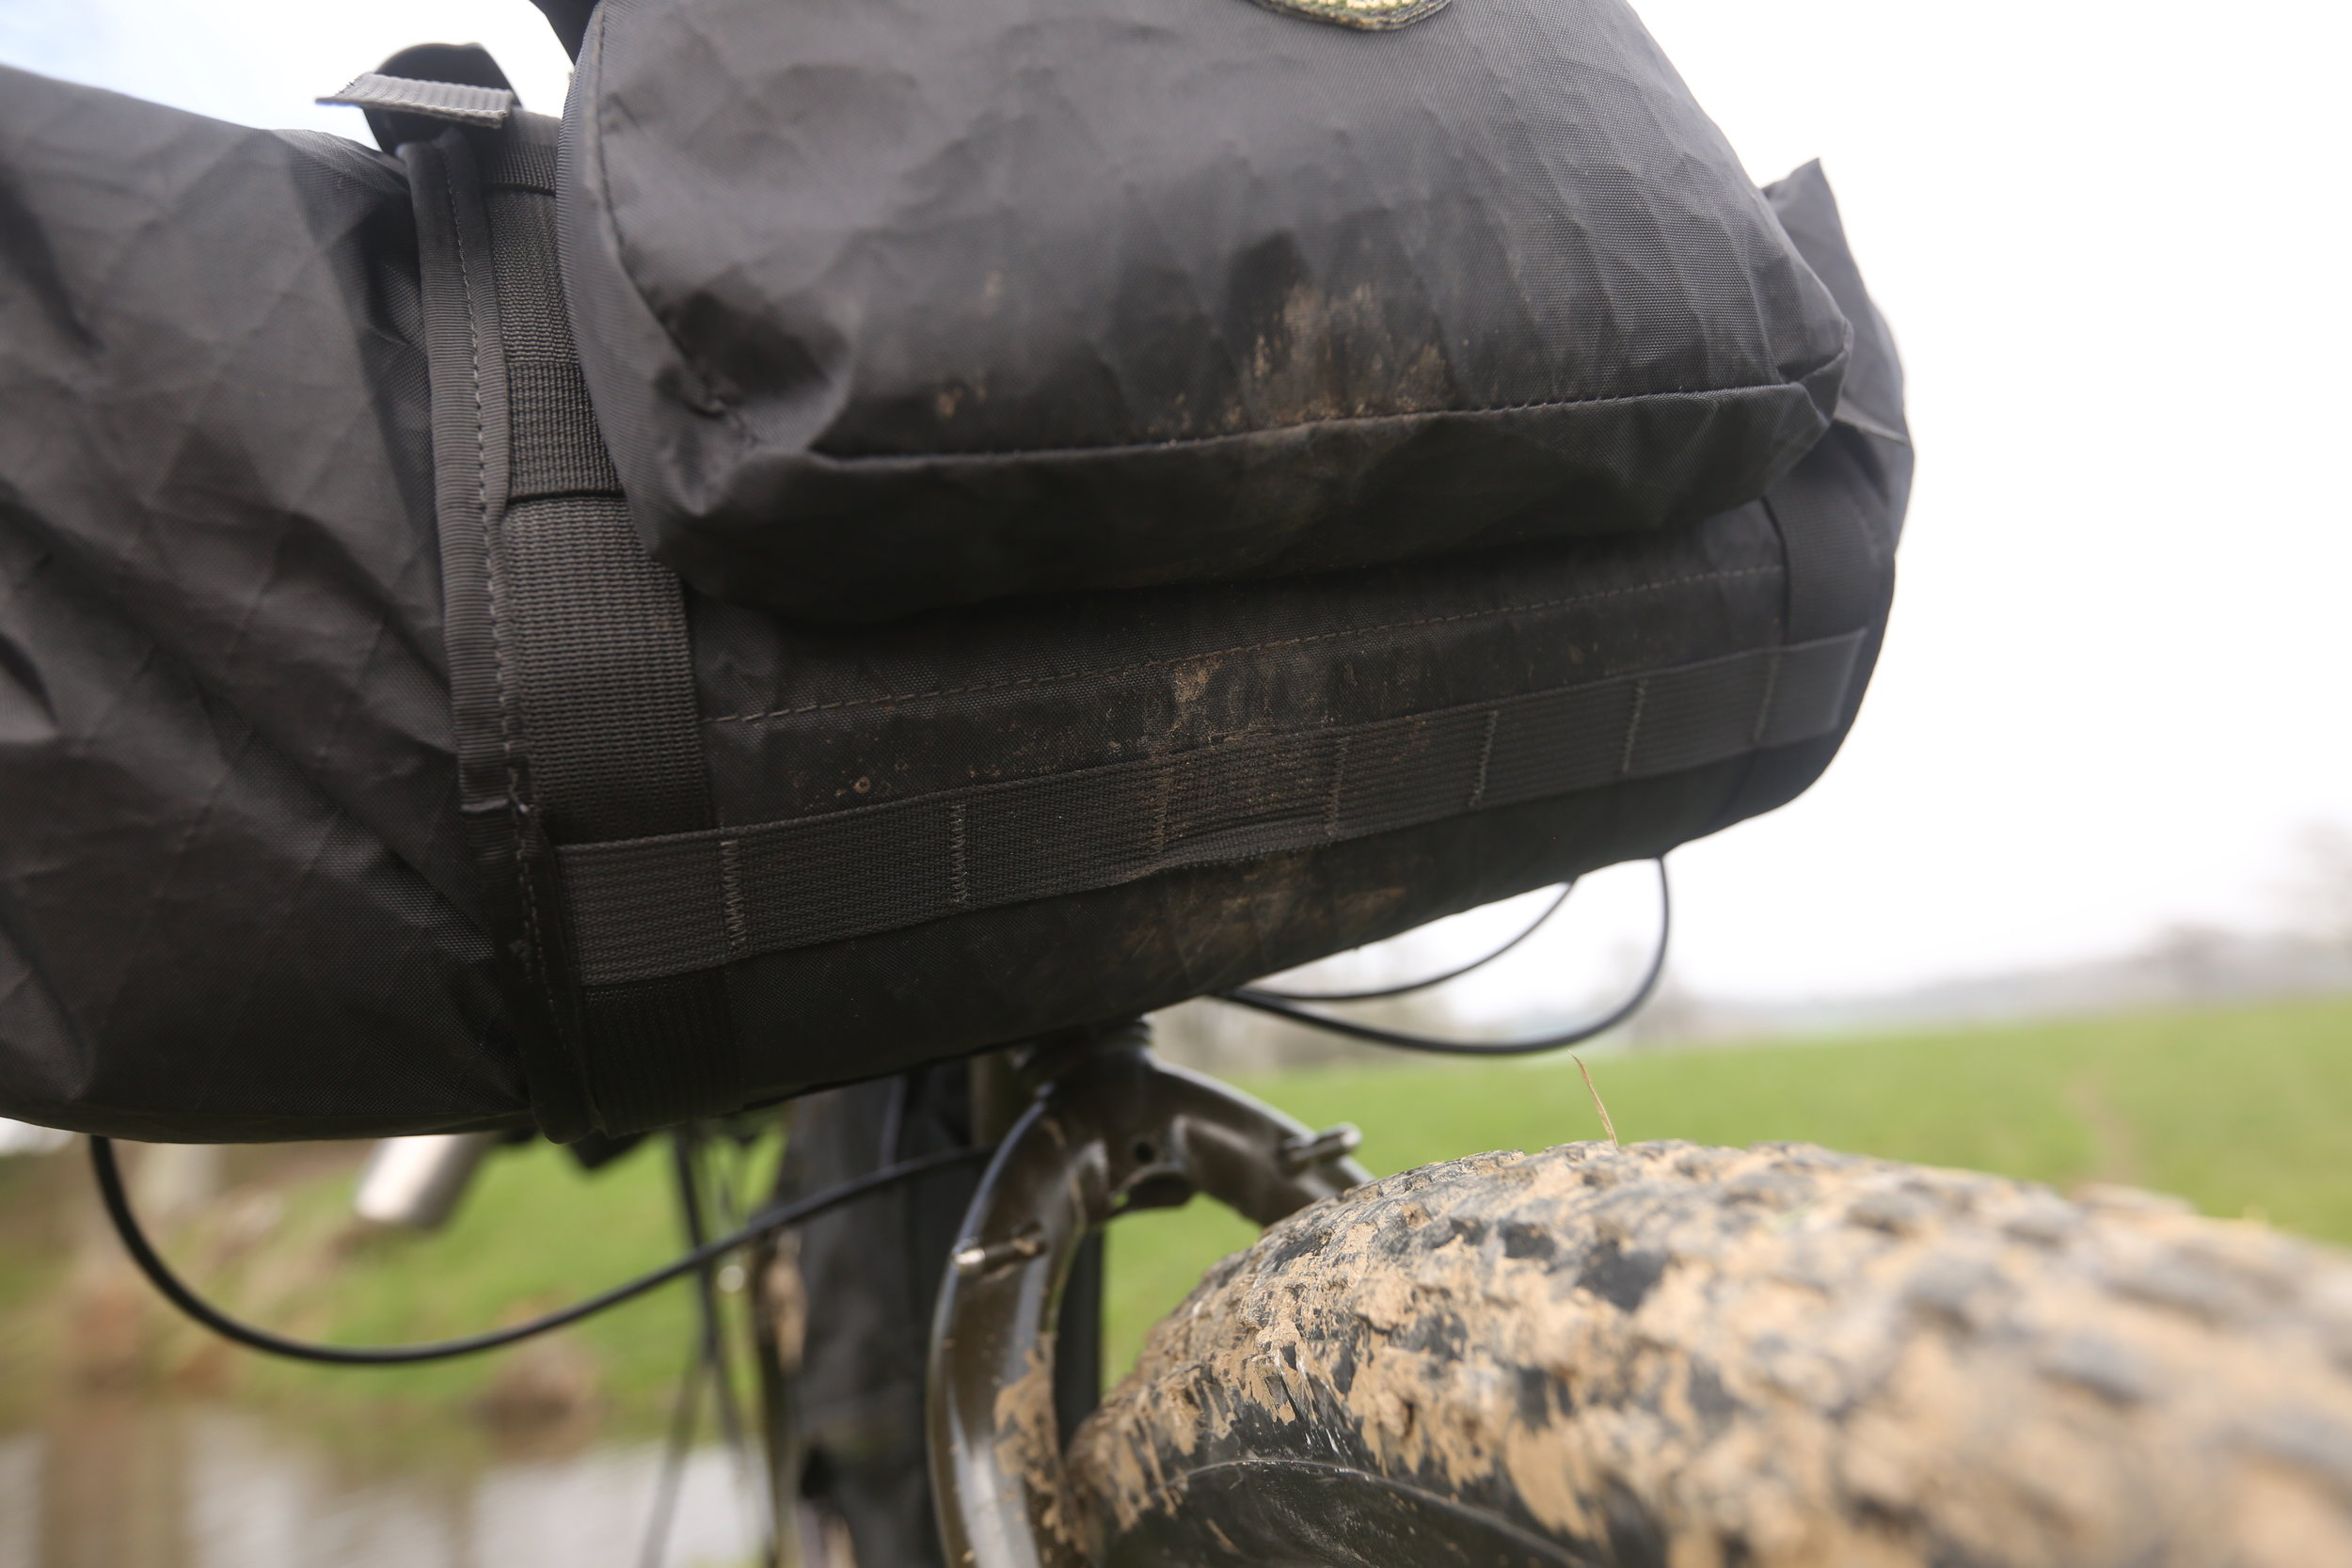 The Handee Randee also features daisy chain webbing on the bottom of the bag ( this would be a great way to secure the base to a front rack ).